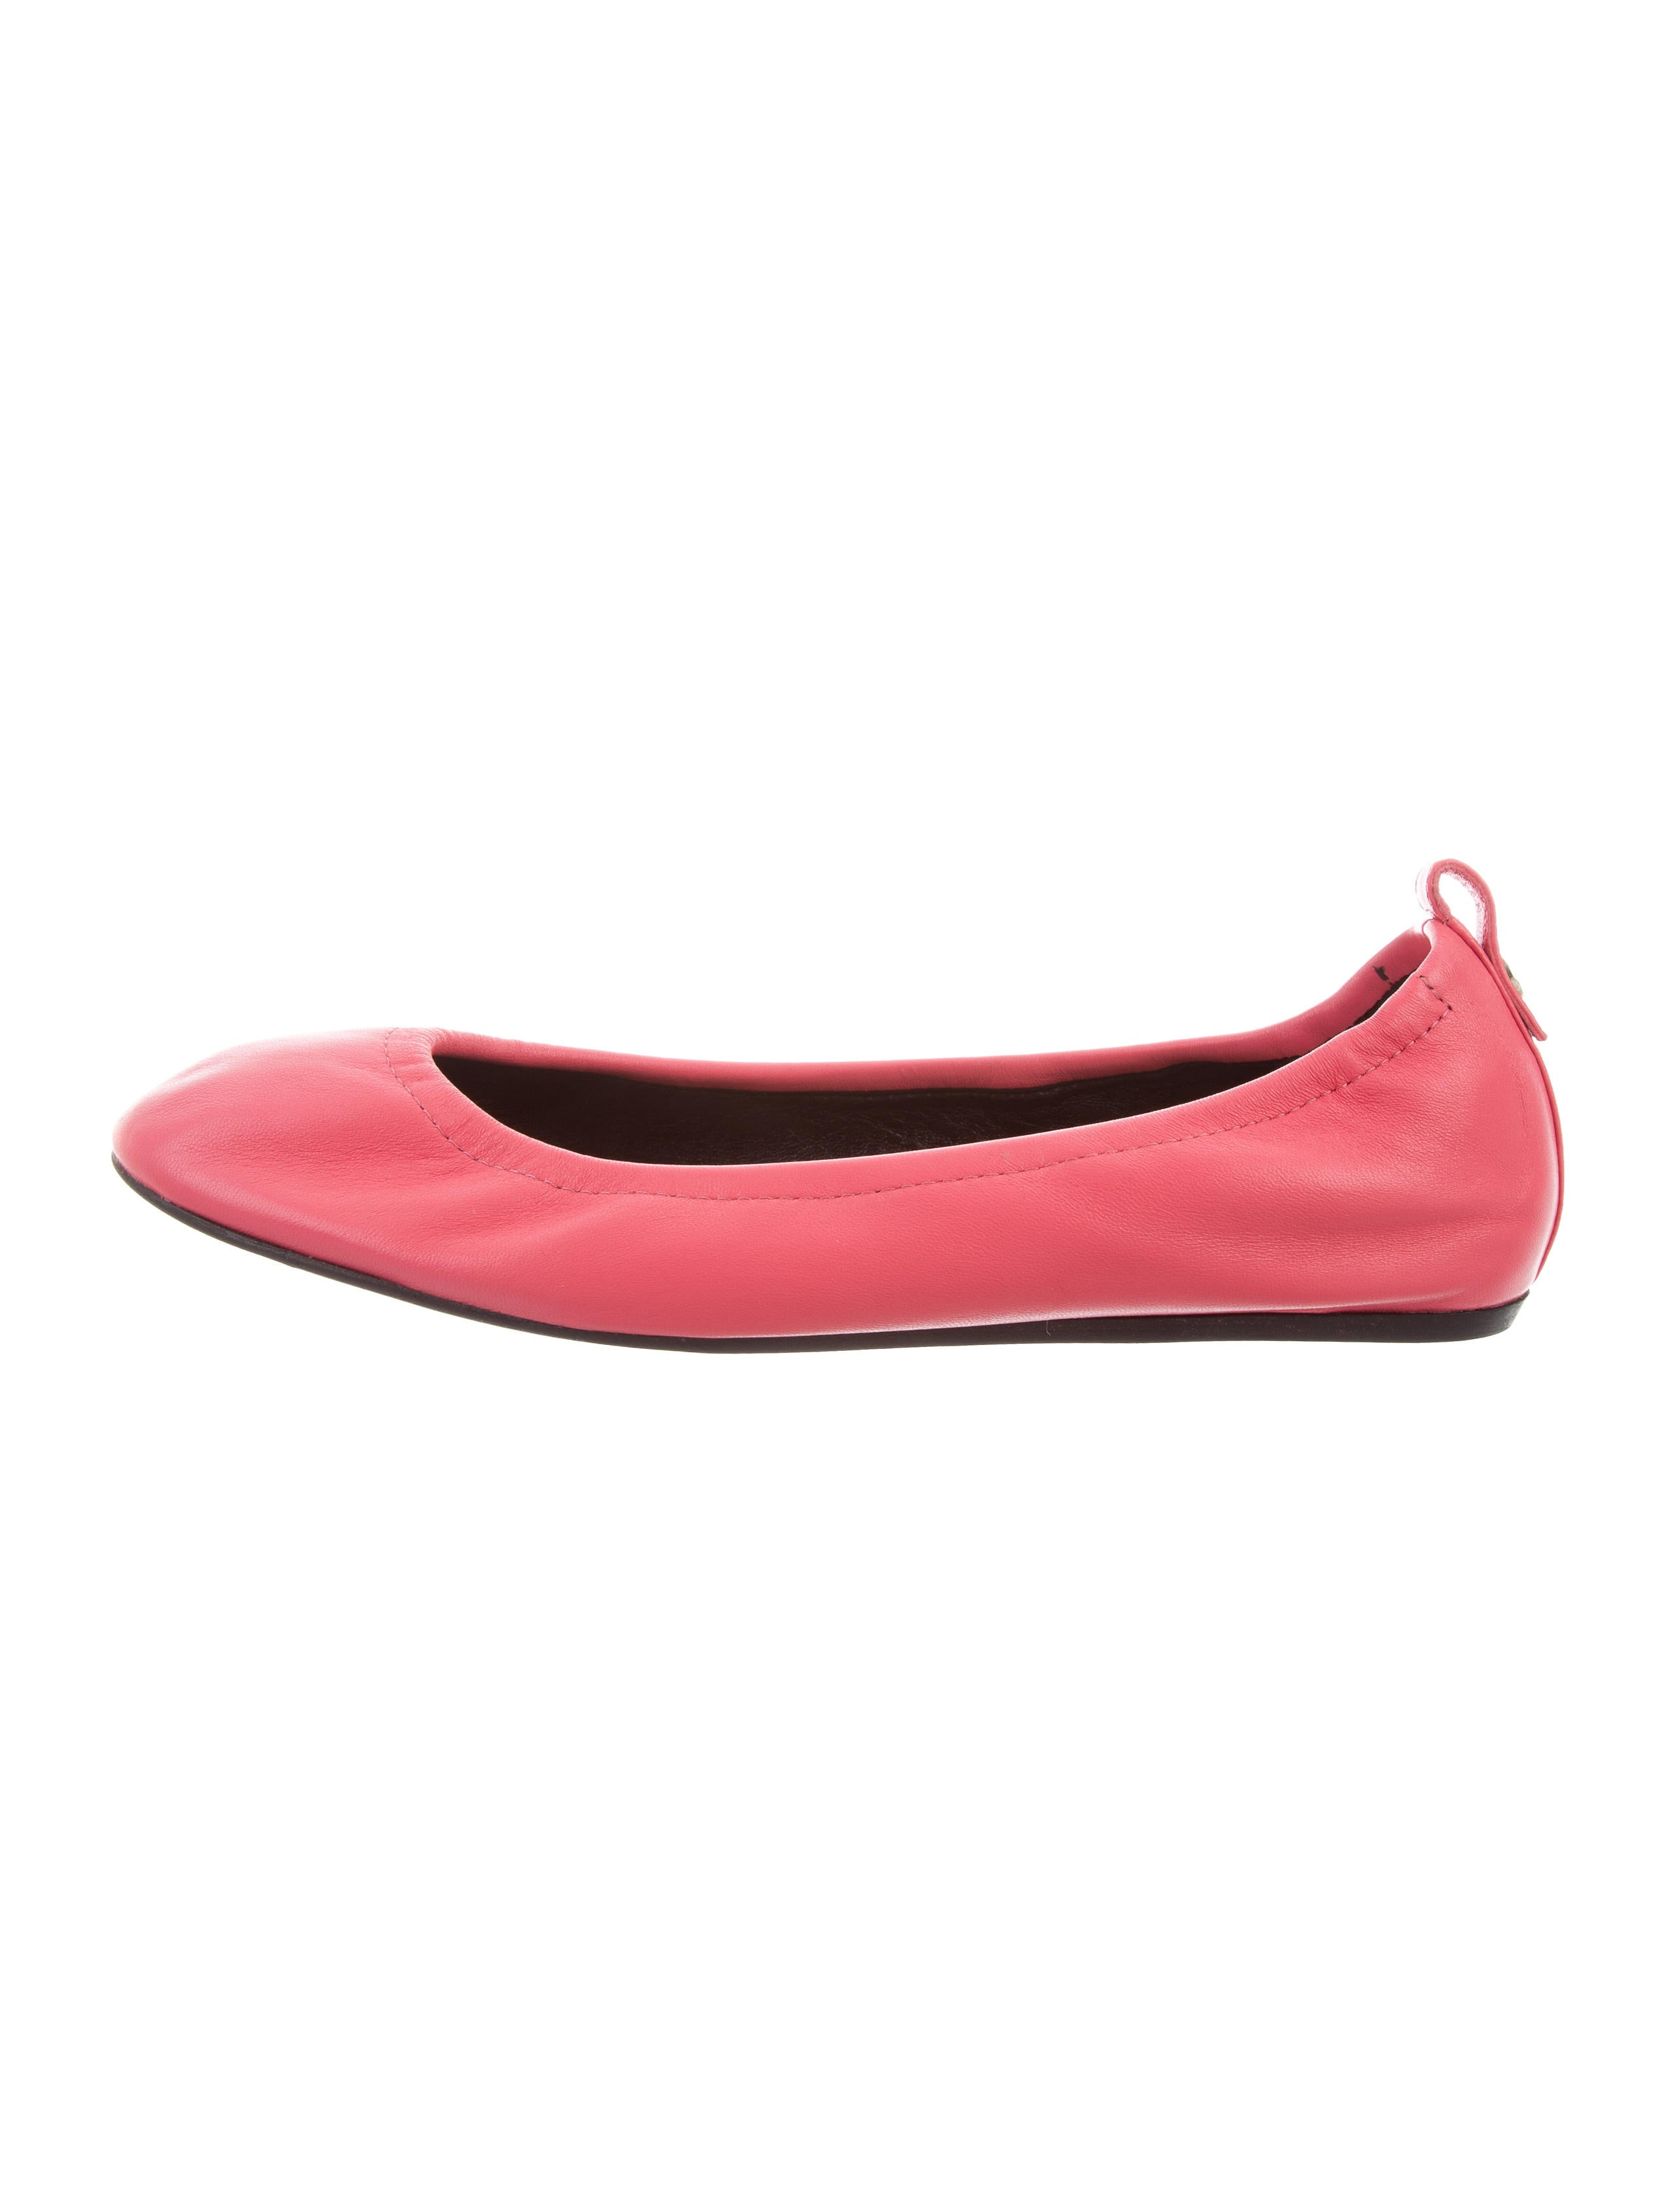 Lanvin Leather Ballet Flats w/ Tags clearance online fake free shipping for sale cheap view Inexpensive online fVvd7wfrGG